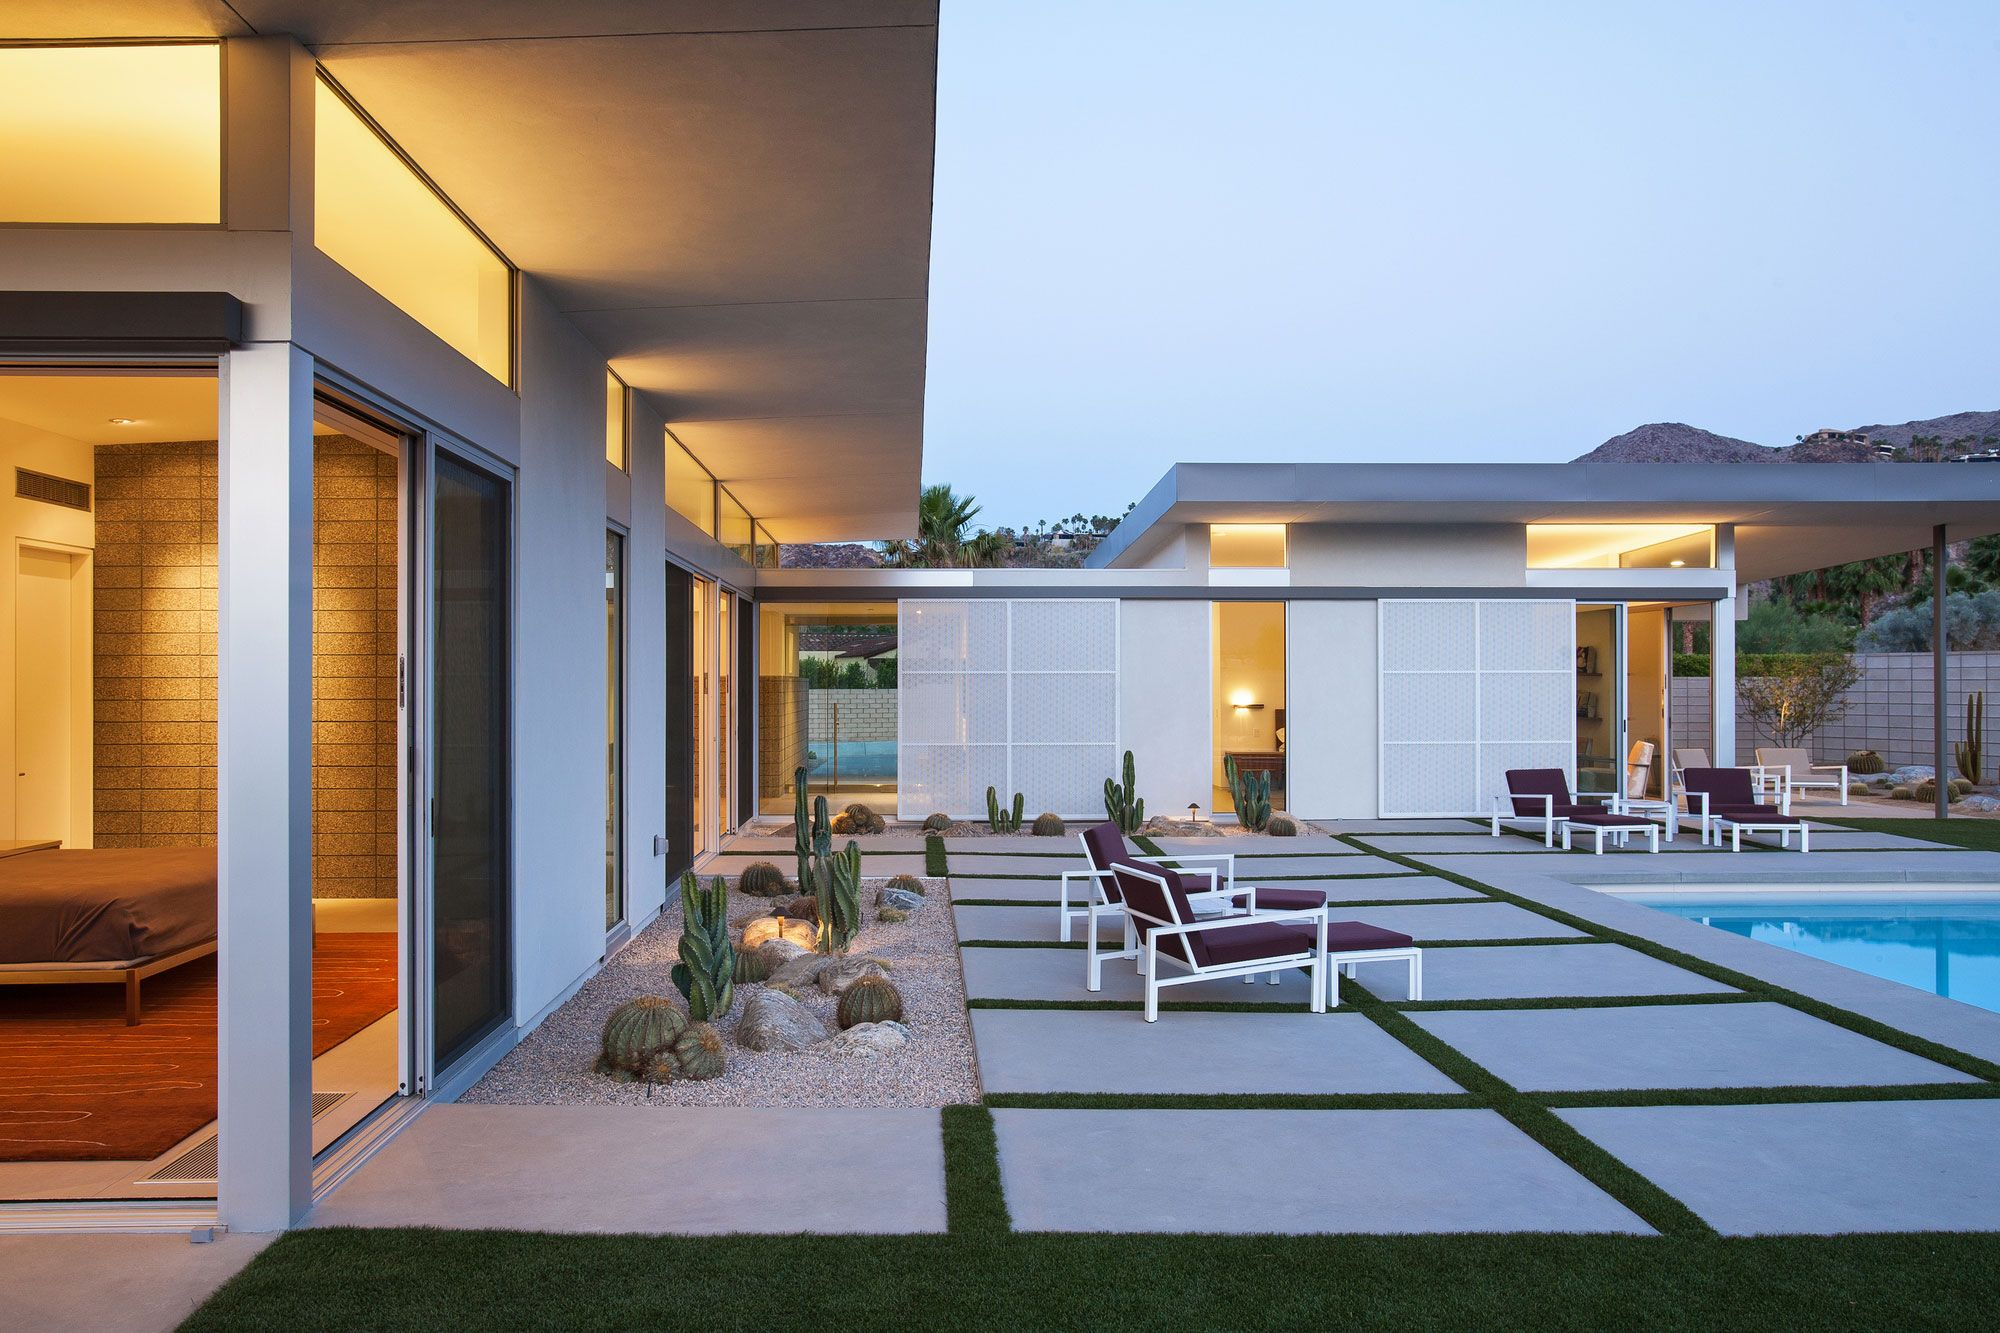 House design with sliding window  house in palm springs by o architecture  like the sliding